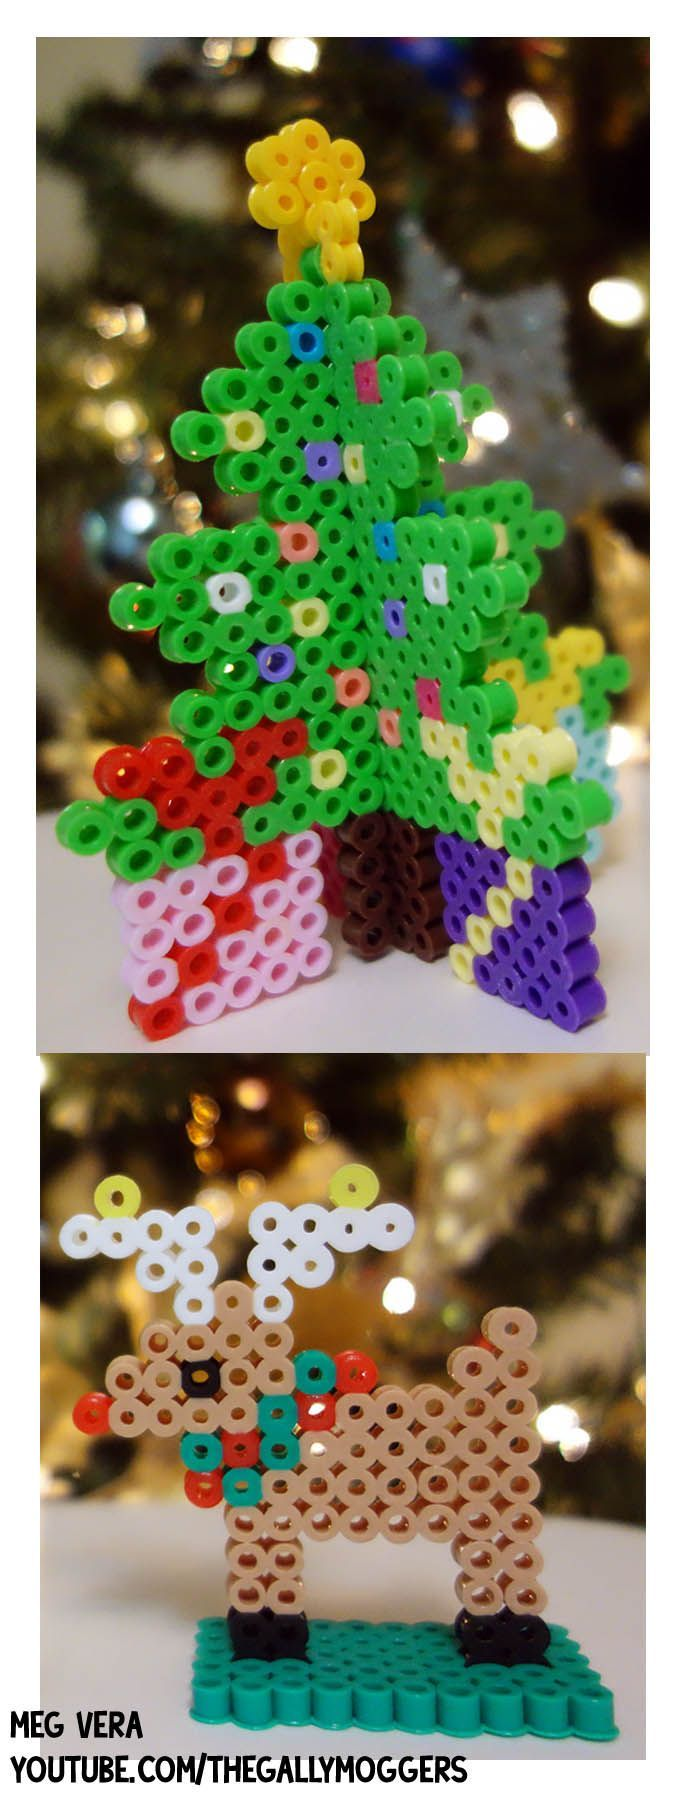 3D Perler Bead Christmas Tree and Perler Bead Reindeer. This Christmas Hamma Bead/Perler Bead is up on my channel on YouTube. http://youtu.be/jAt14eo4ITU